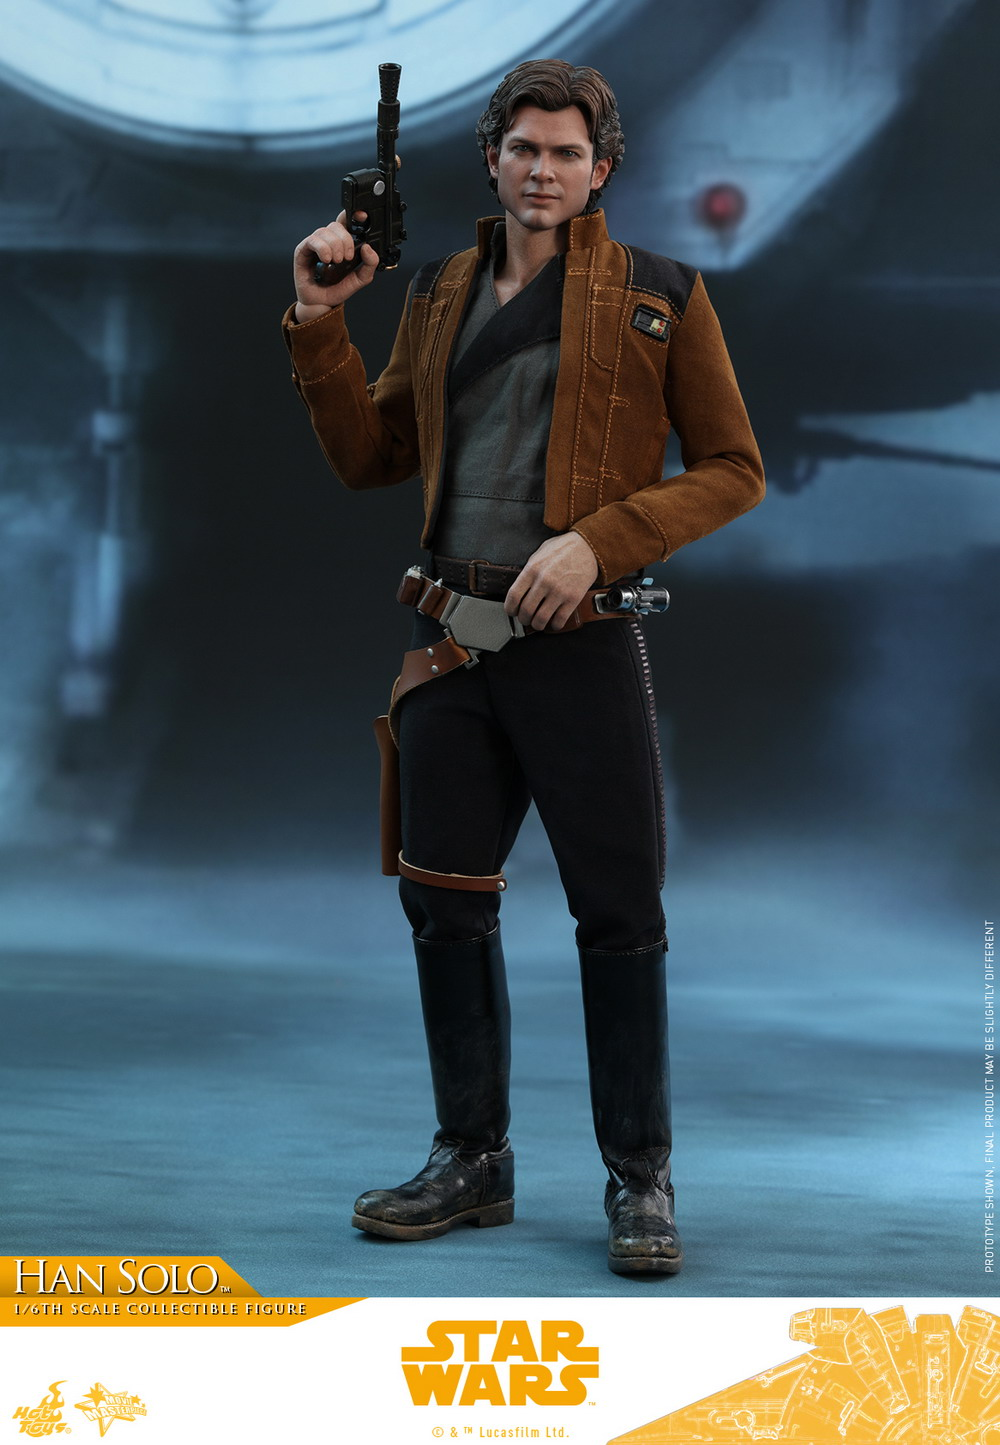 NEW PRODUCT: HOT TOYS: SOLO: A STAR WARS STORY HAN SOLO (TWO VERSIONS) 1/6TH SCALE COLLECTIBLE FIGURE 144